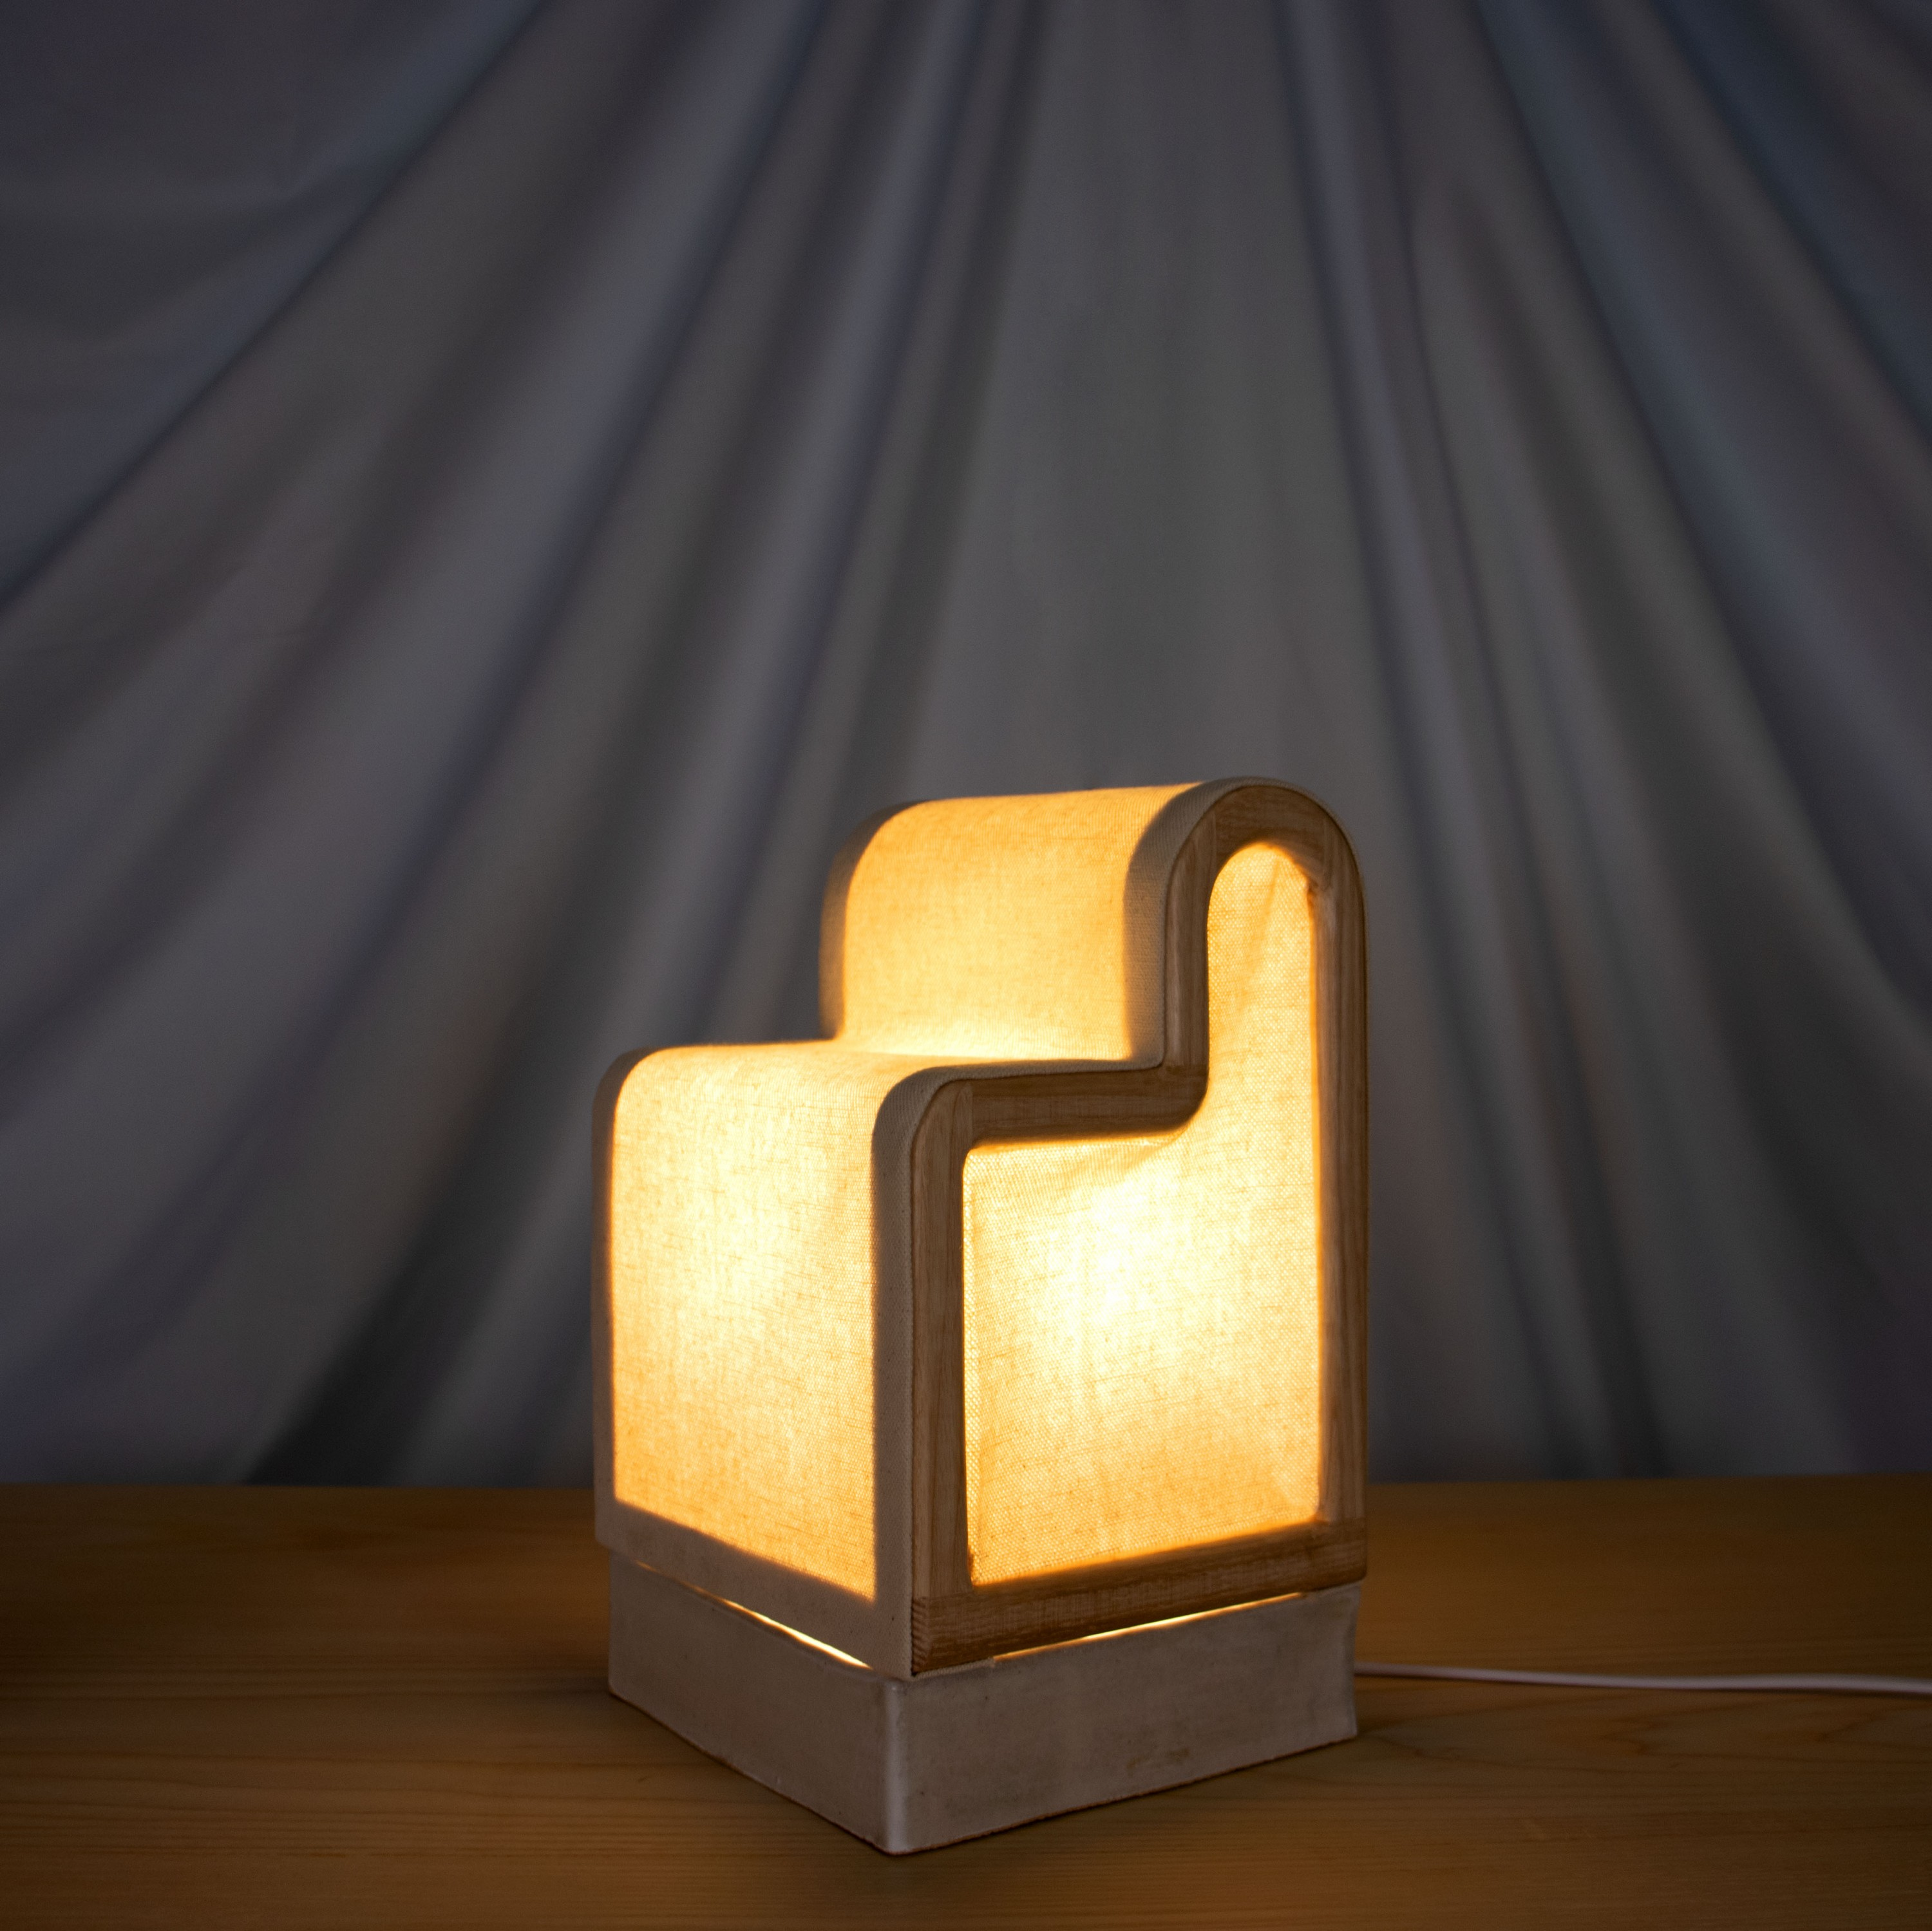 A lamp with a square, ceramic base and a shade consisting of an ash wood frame and wrapped canvas is placed on a wooden tabletop in front of a blue fabric background. The lamp is illuminated, making the image very moody and dramatic. The shade is a rounde